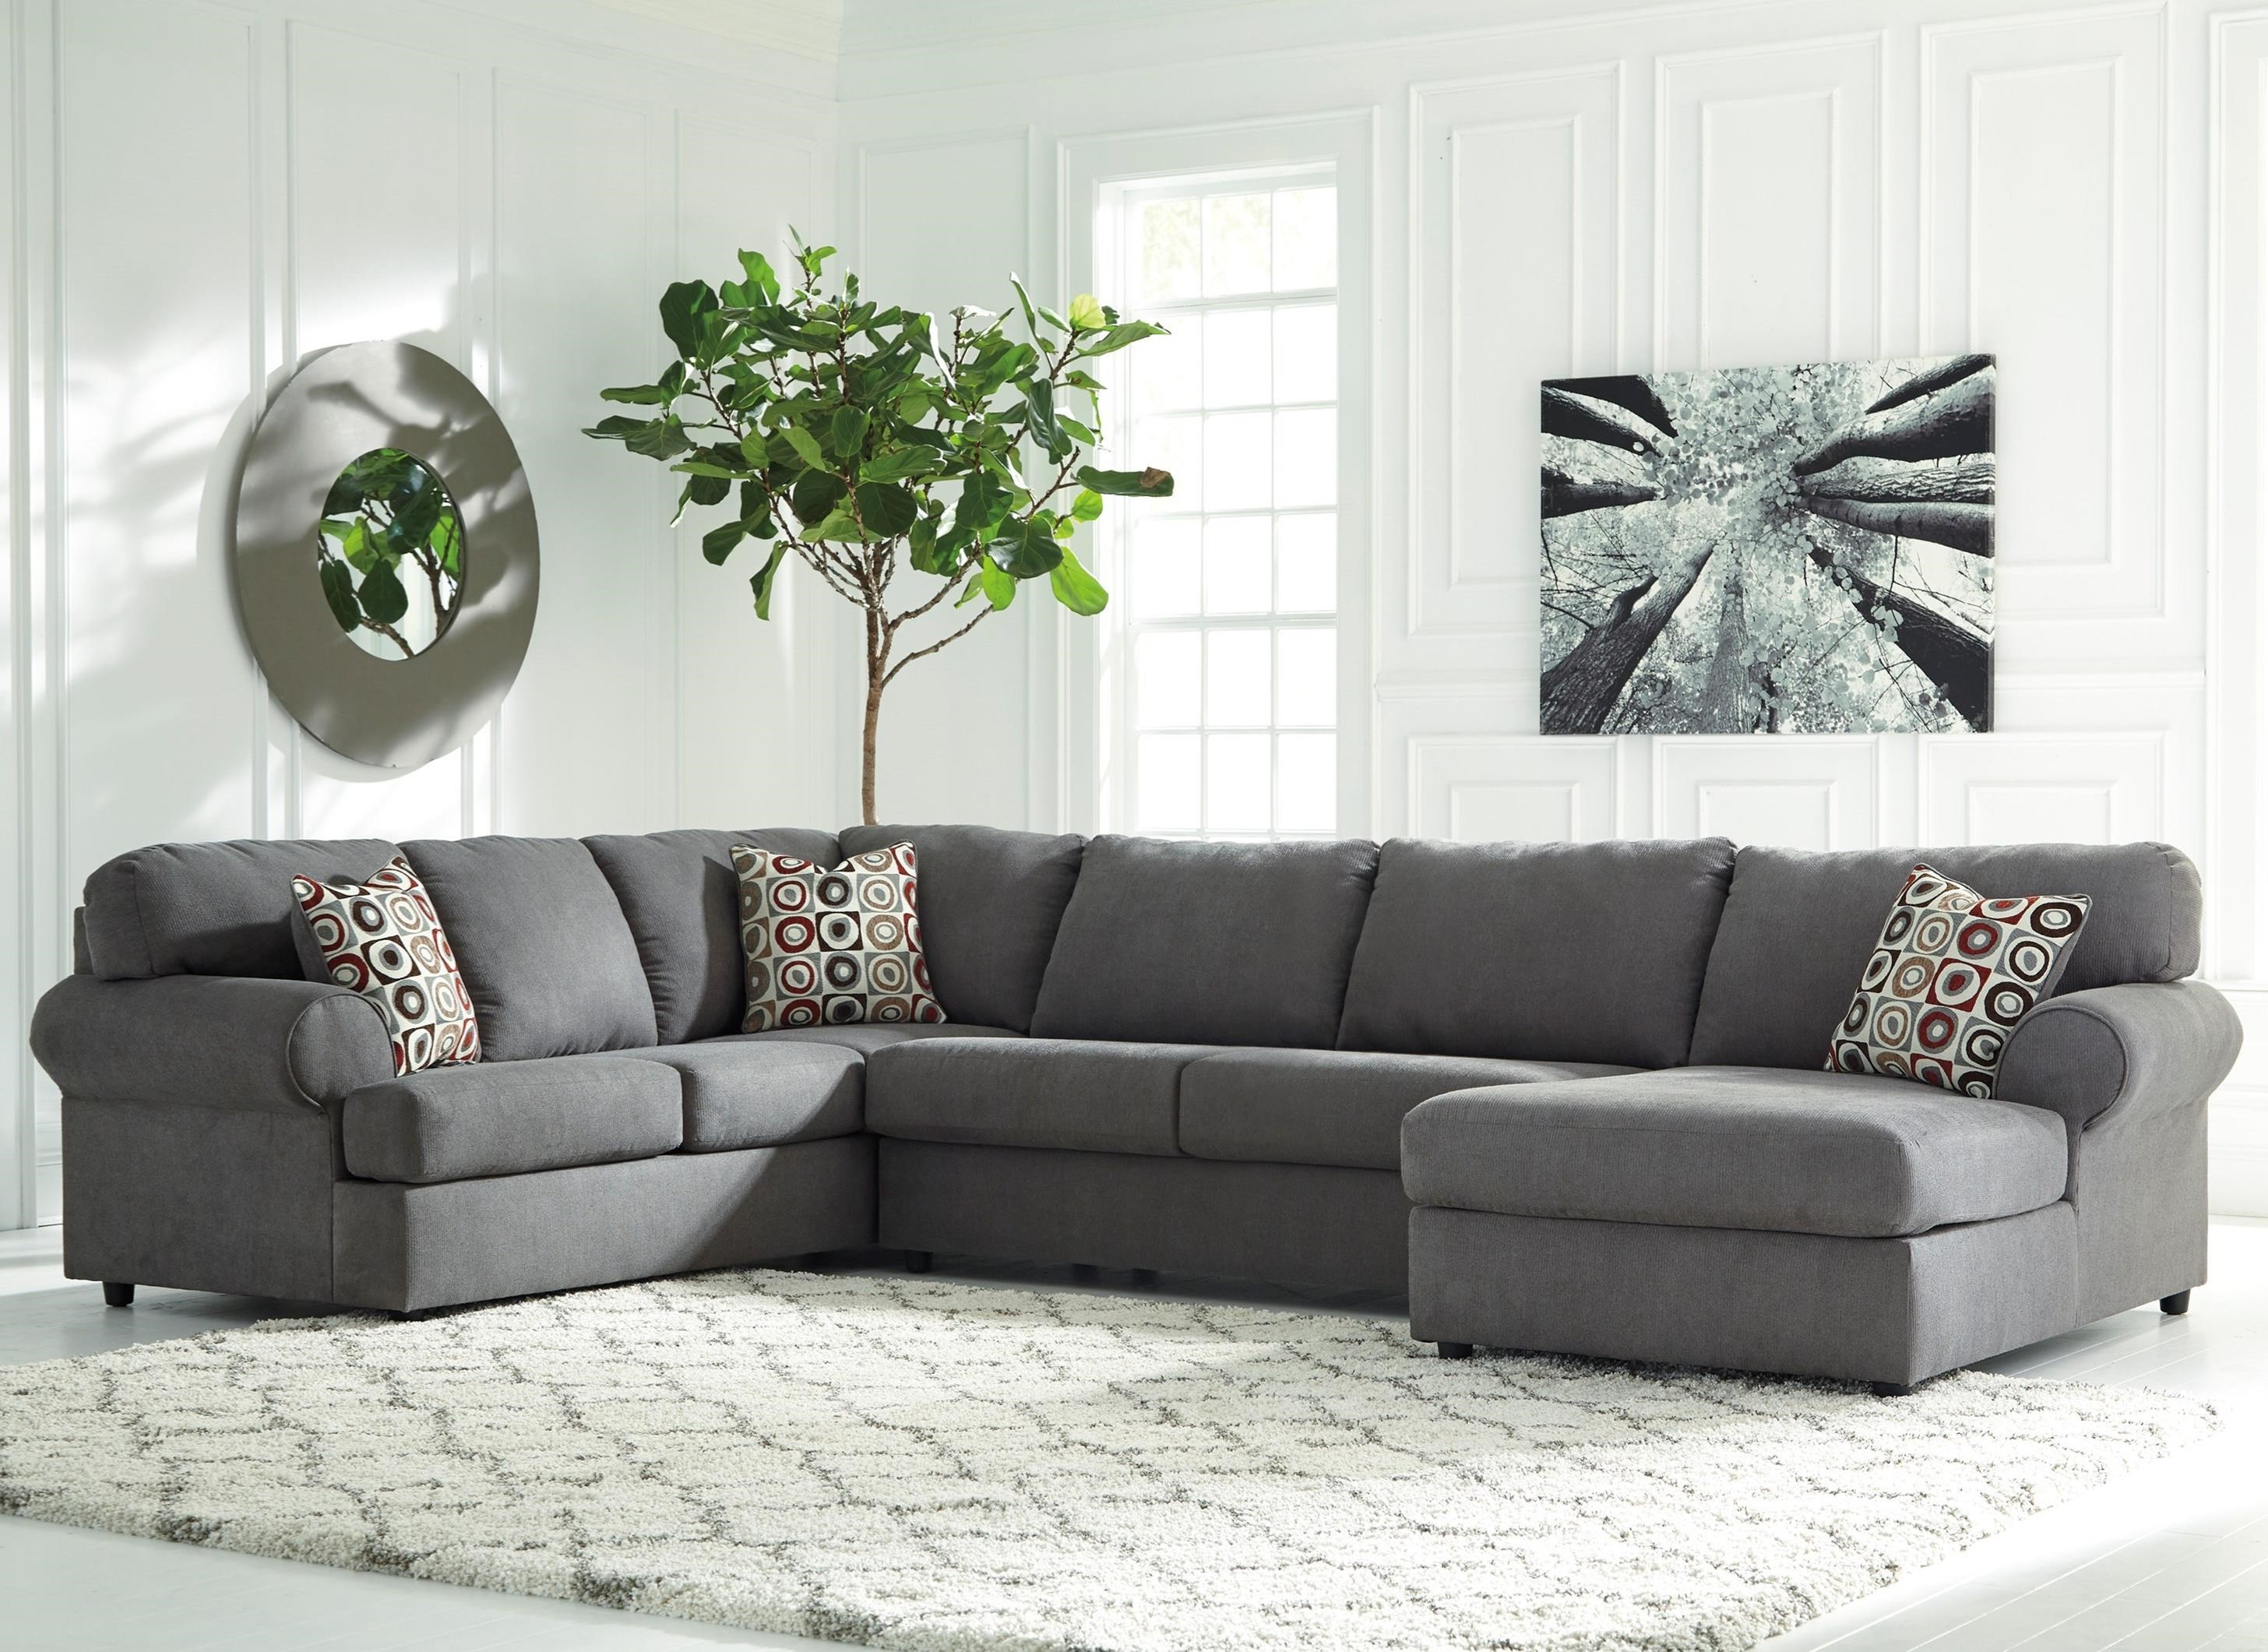 Preferred Delano 2 Piece Sectionals With Laf Oversized Chaise With Regard To Sectional Chaise – Locsbyhelenelorasa (View 17 of 20)